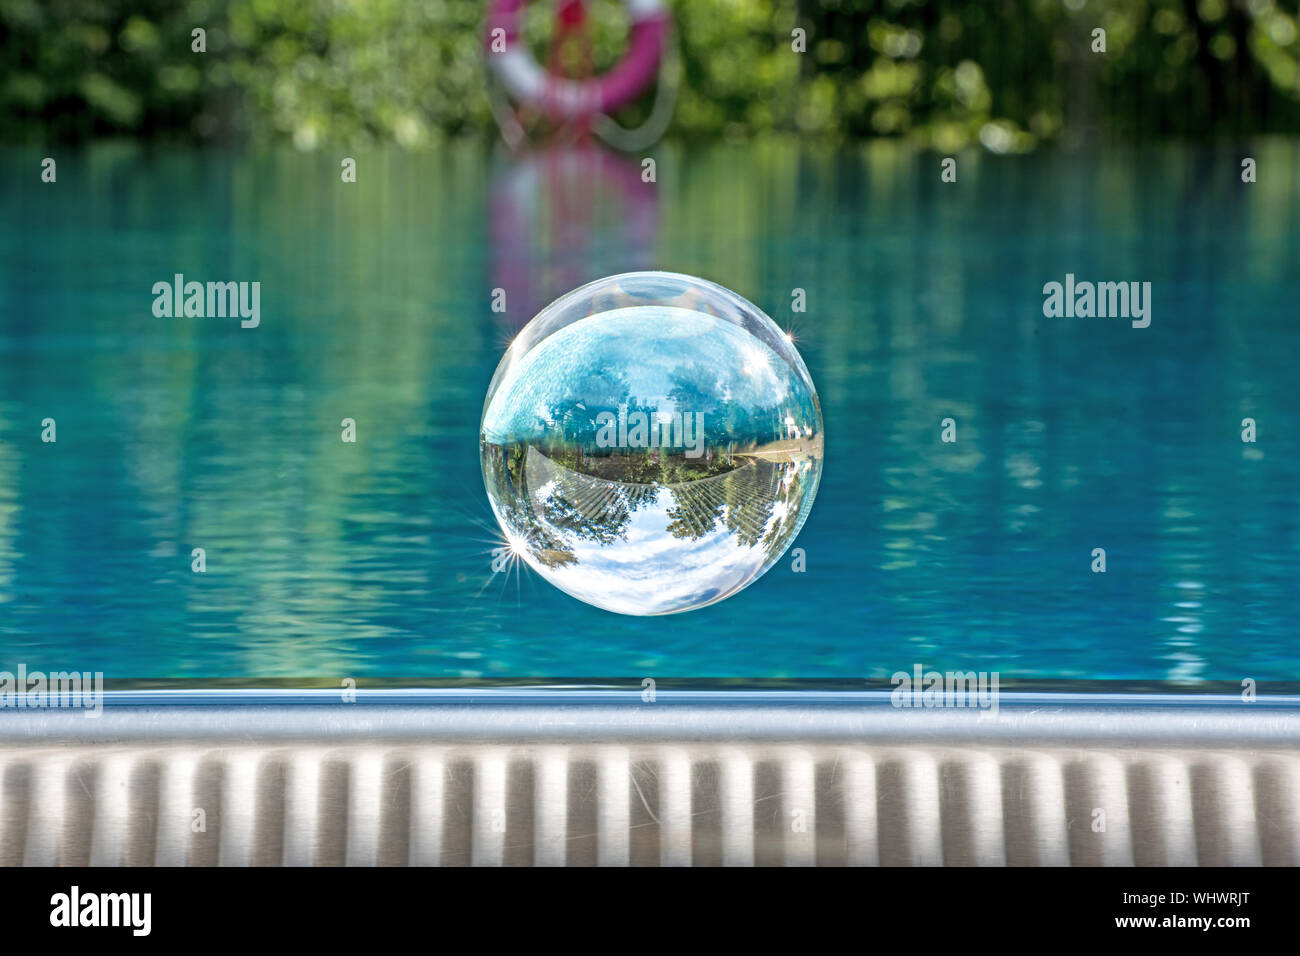 Glass ball hovers over a swimming pool with mirrored cloudy ...